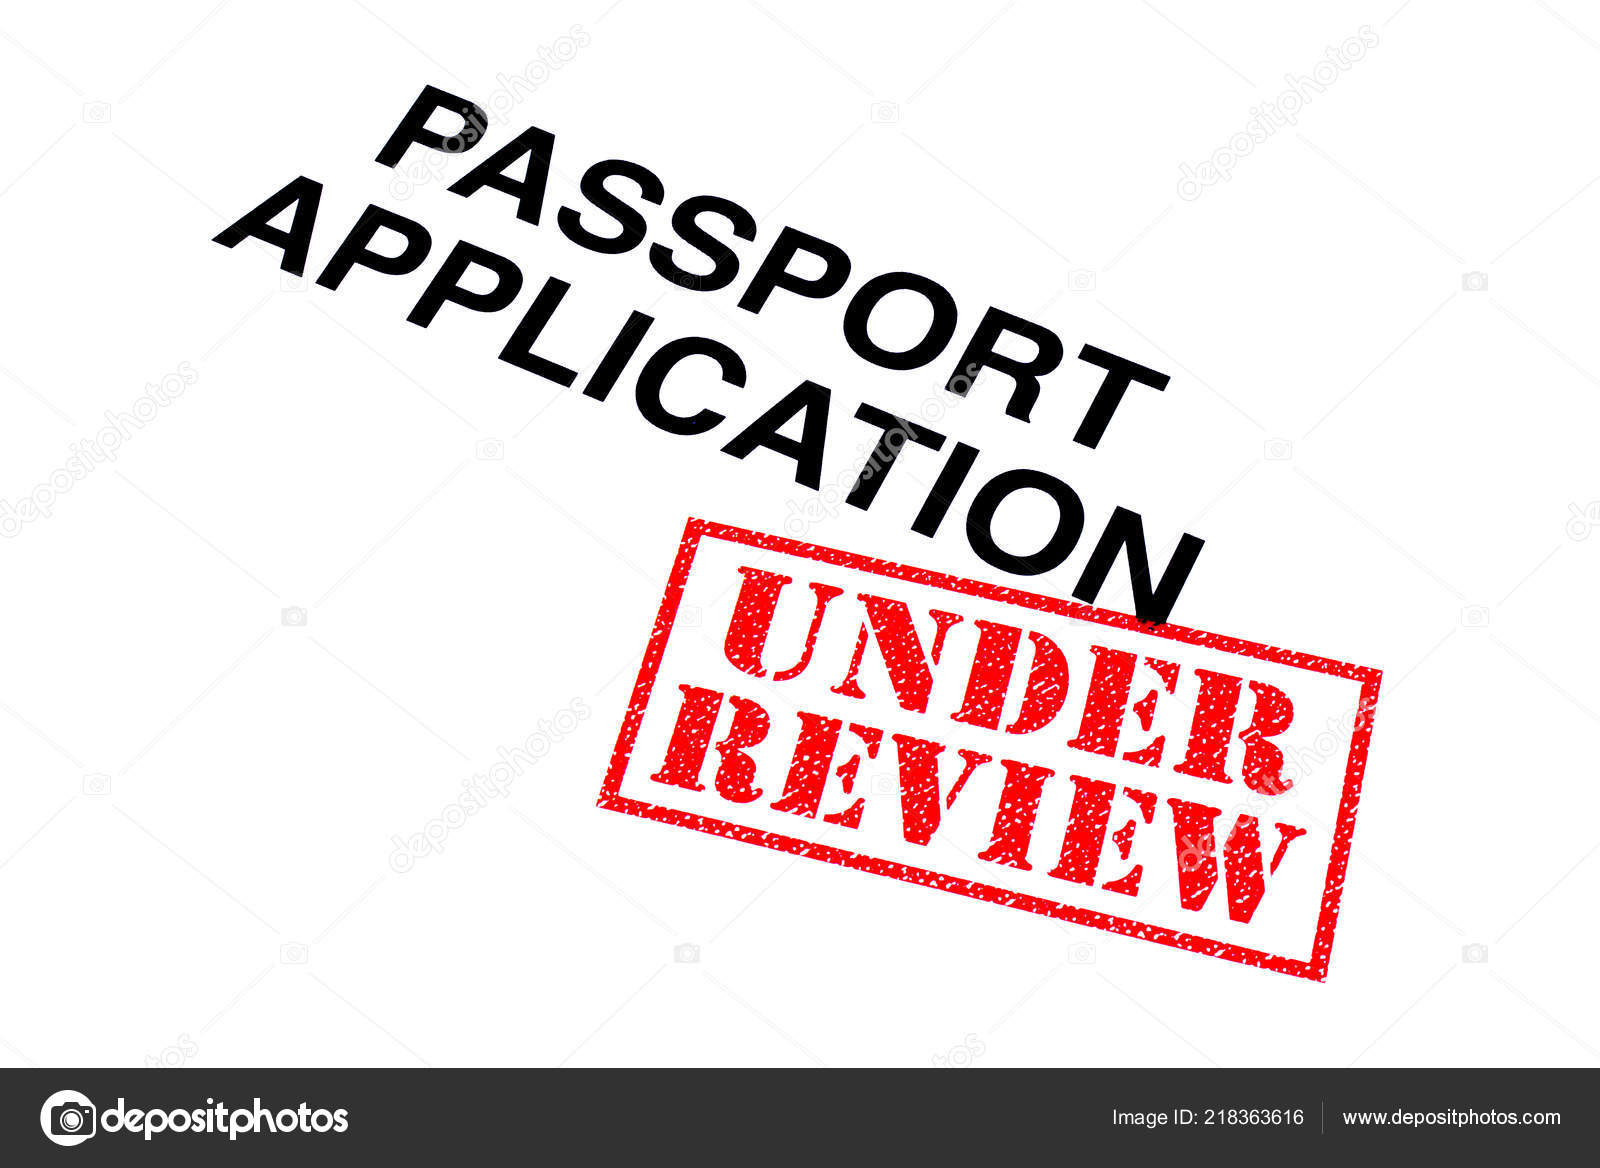 Passport Application Heading Stamped Red Review Rubber Stamp